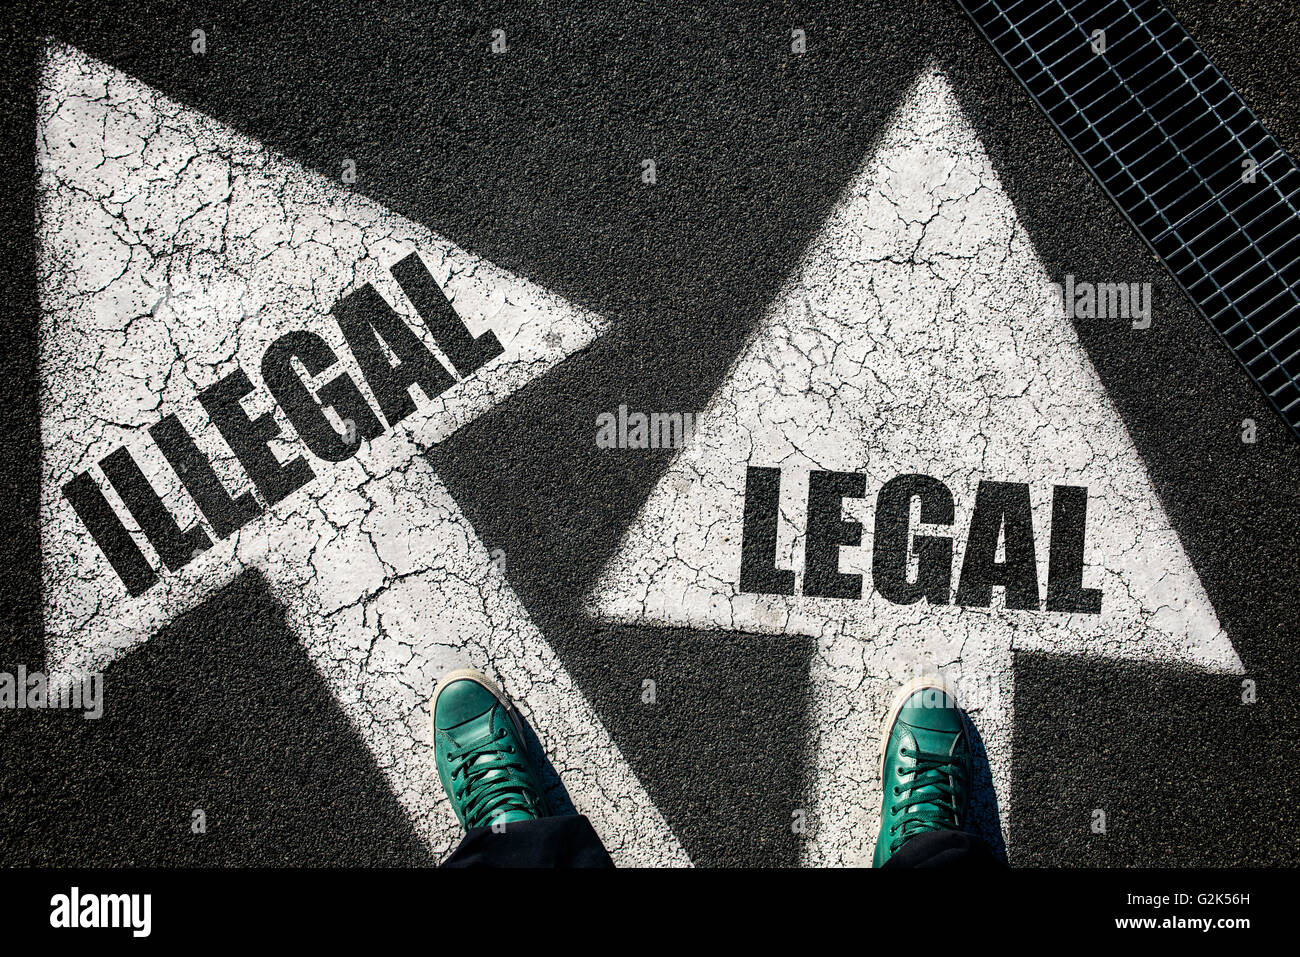 Dilemma concept with mans legs on legal and illegal signs on the road - Stock Image